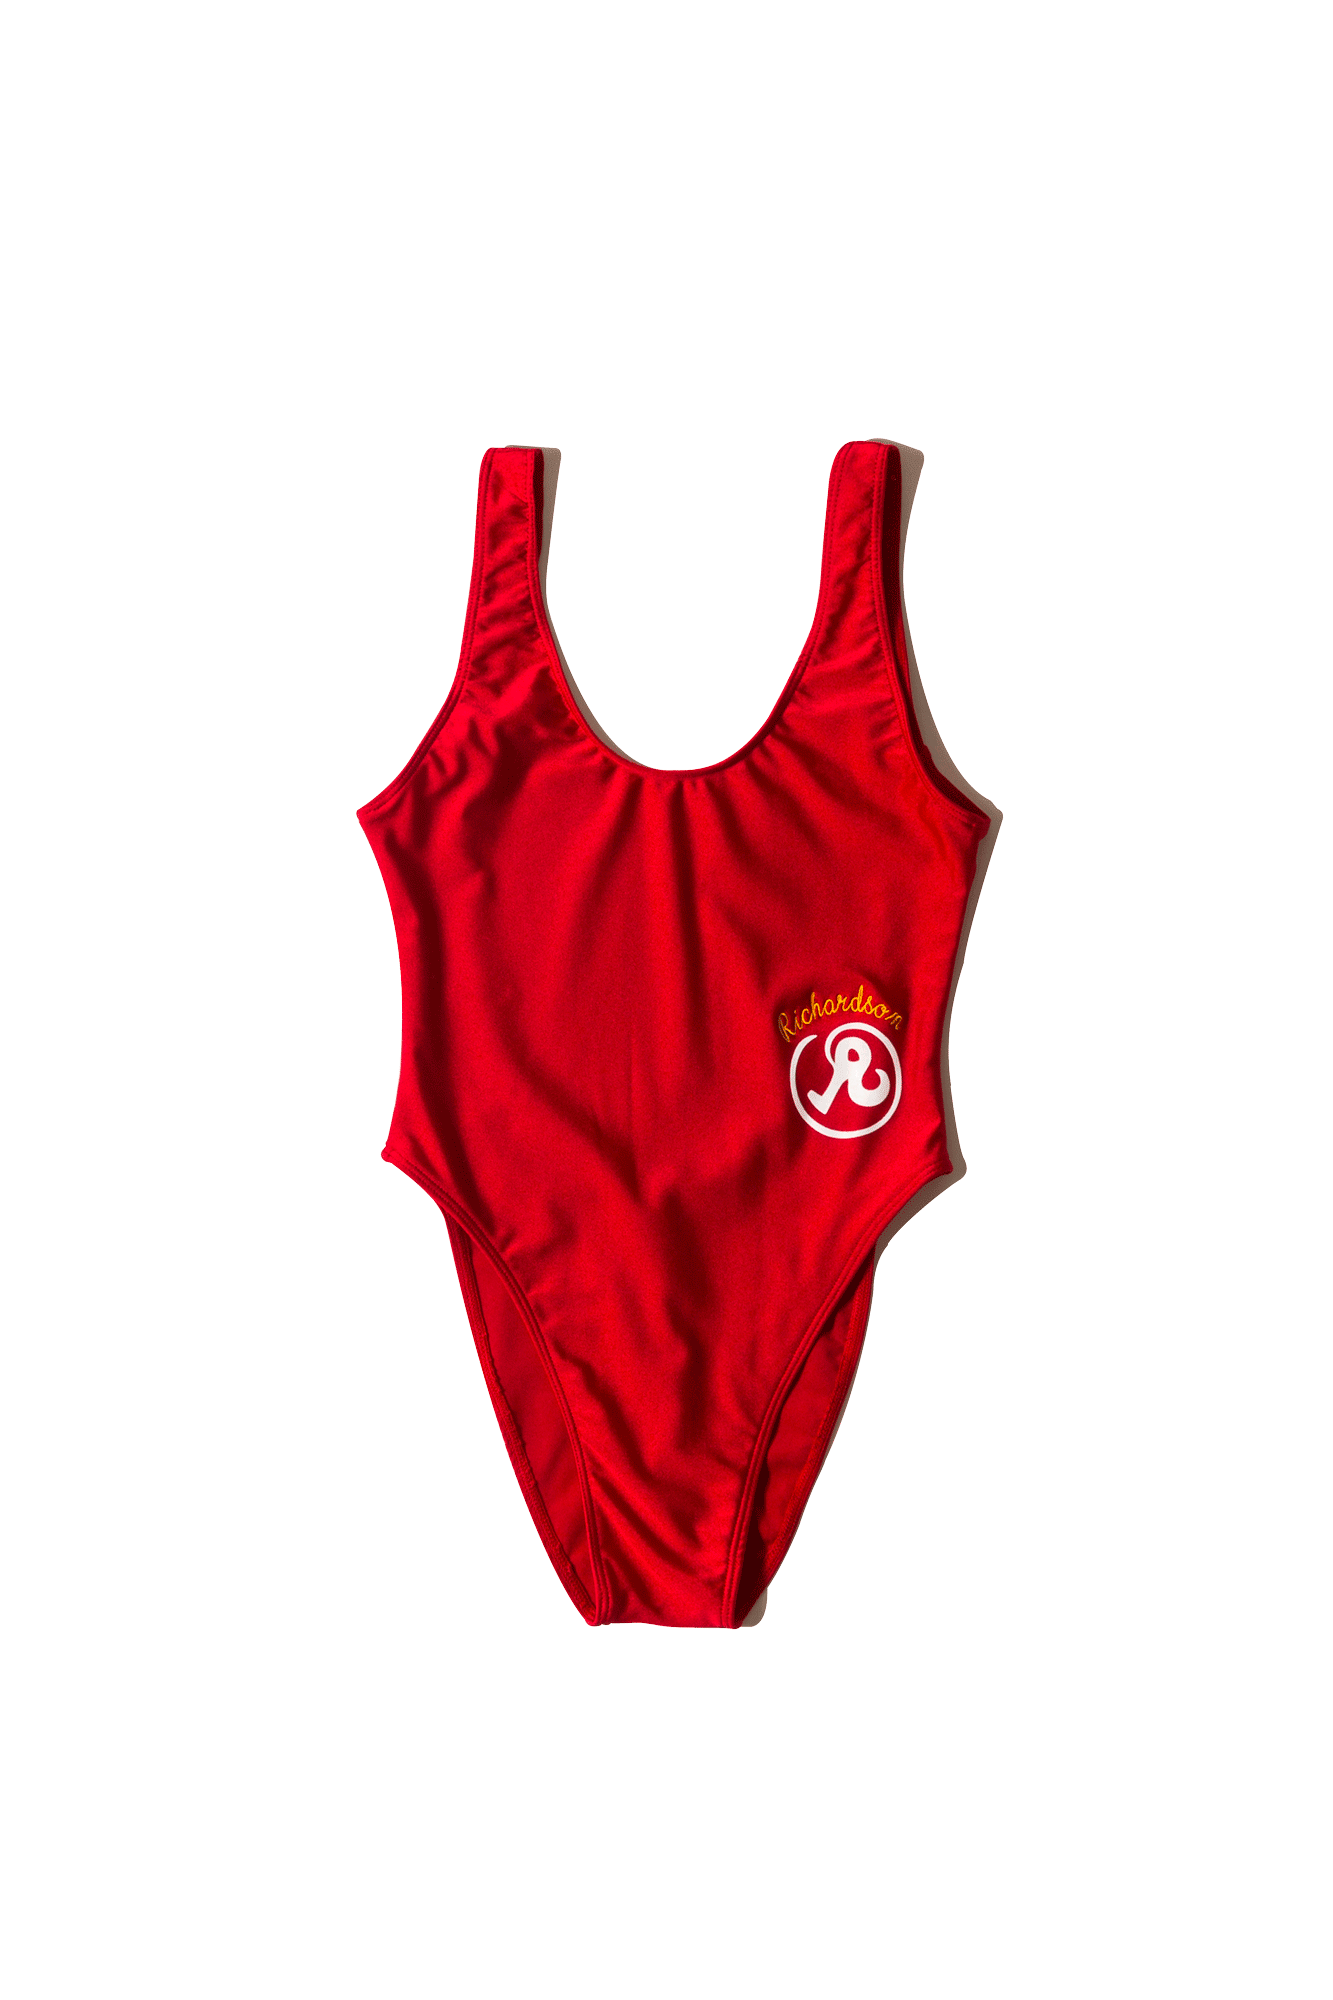 Richardson Mag Beachwear One Piece Swimsuit Red 6211120000#000#RED#S - One Block Down